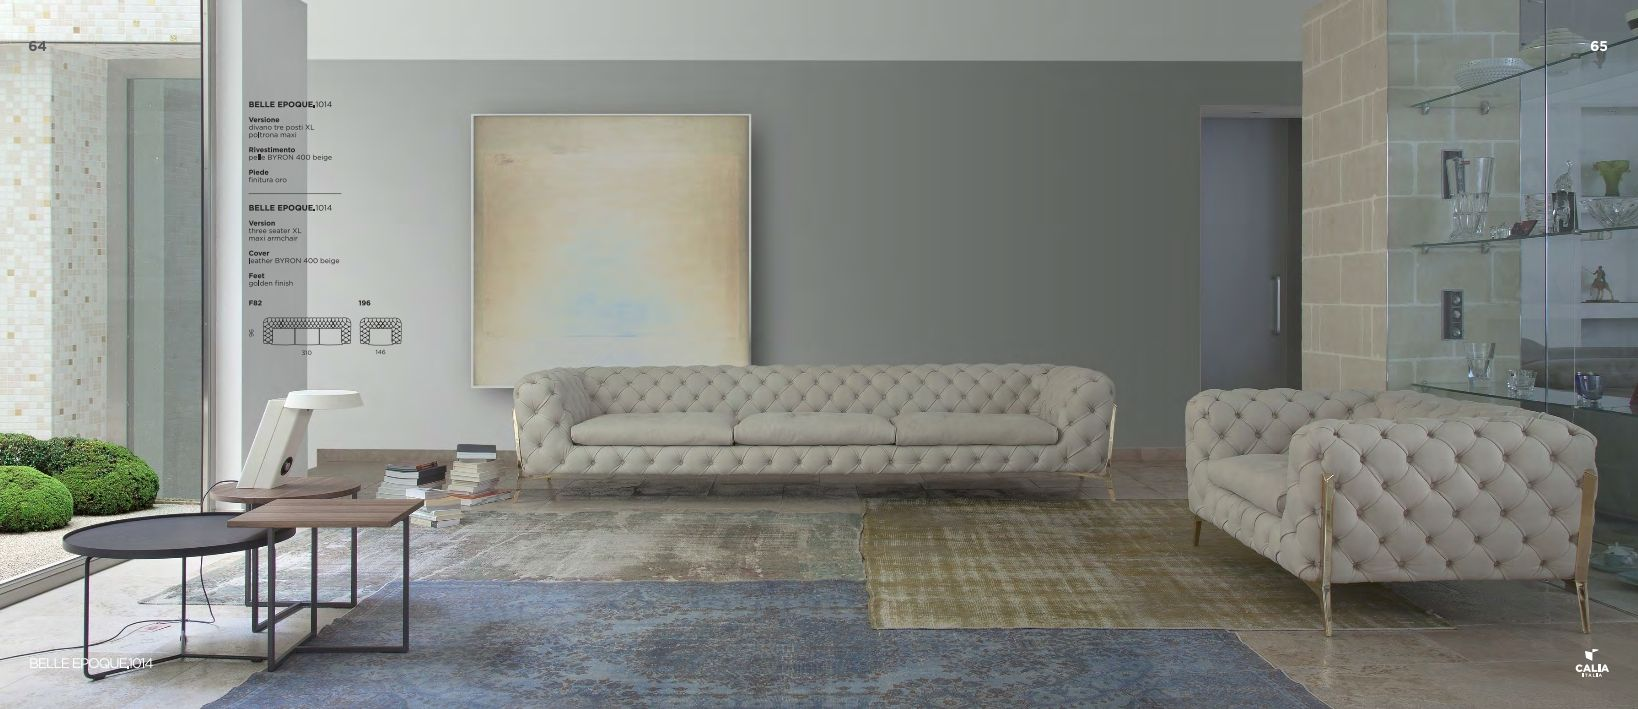 Italian sofas upholstered furniture calia italia belle epoque 1014 seriesfurniture from italy Italienische sofa